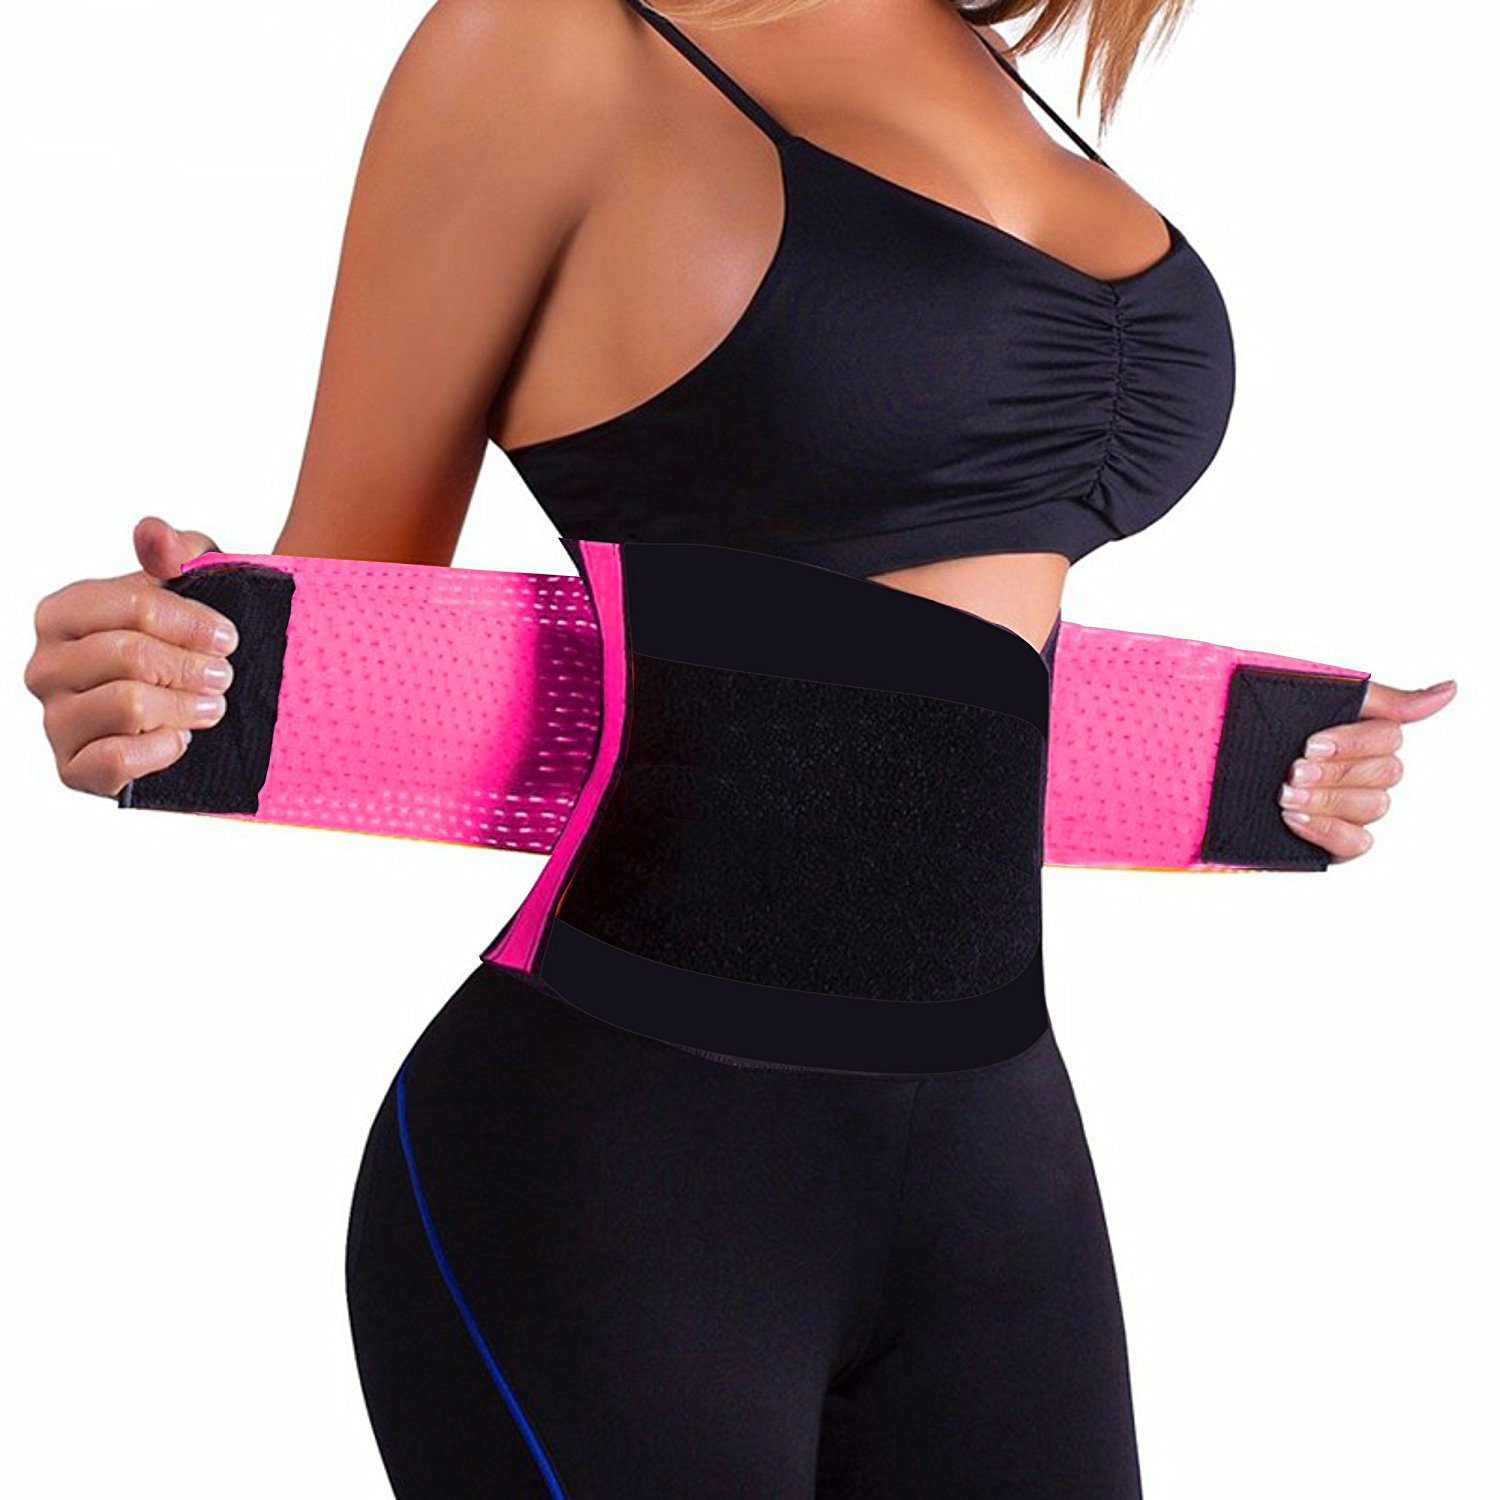 NB Women's Waist Trainer Belt-Waist Cincher Trimmer-Sport Training Girdle and Slimming Body Shaper Belt-Postpartum Girdle